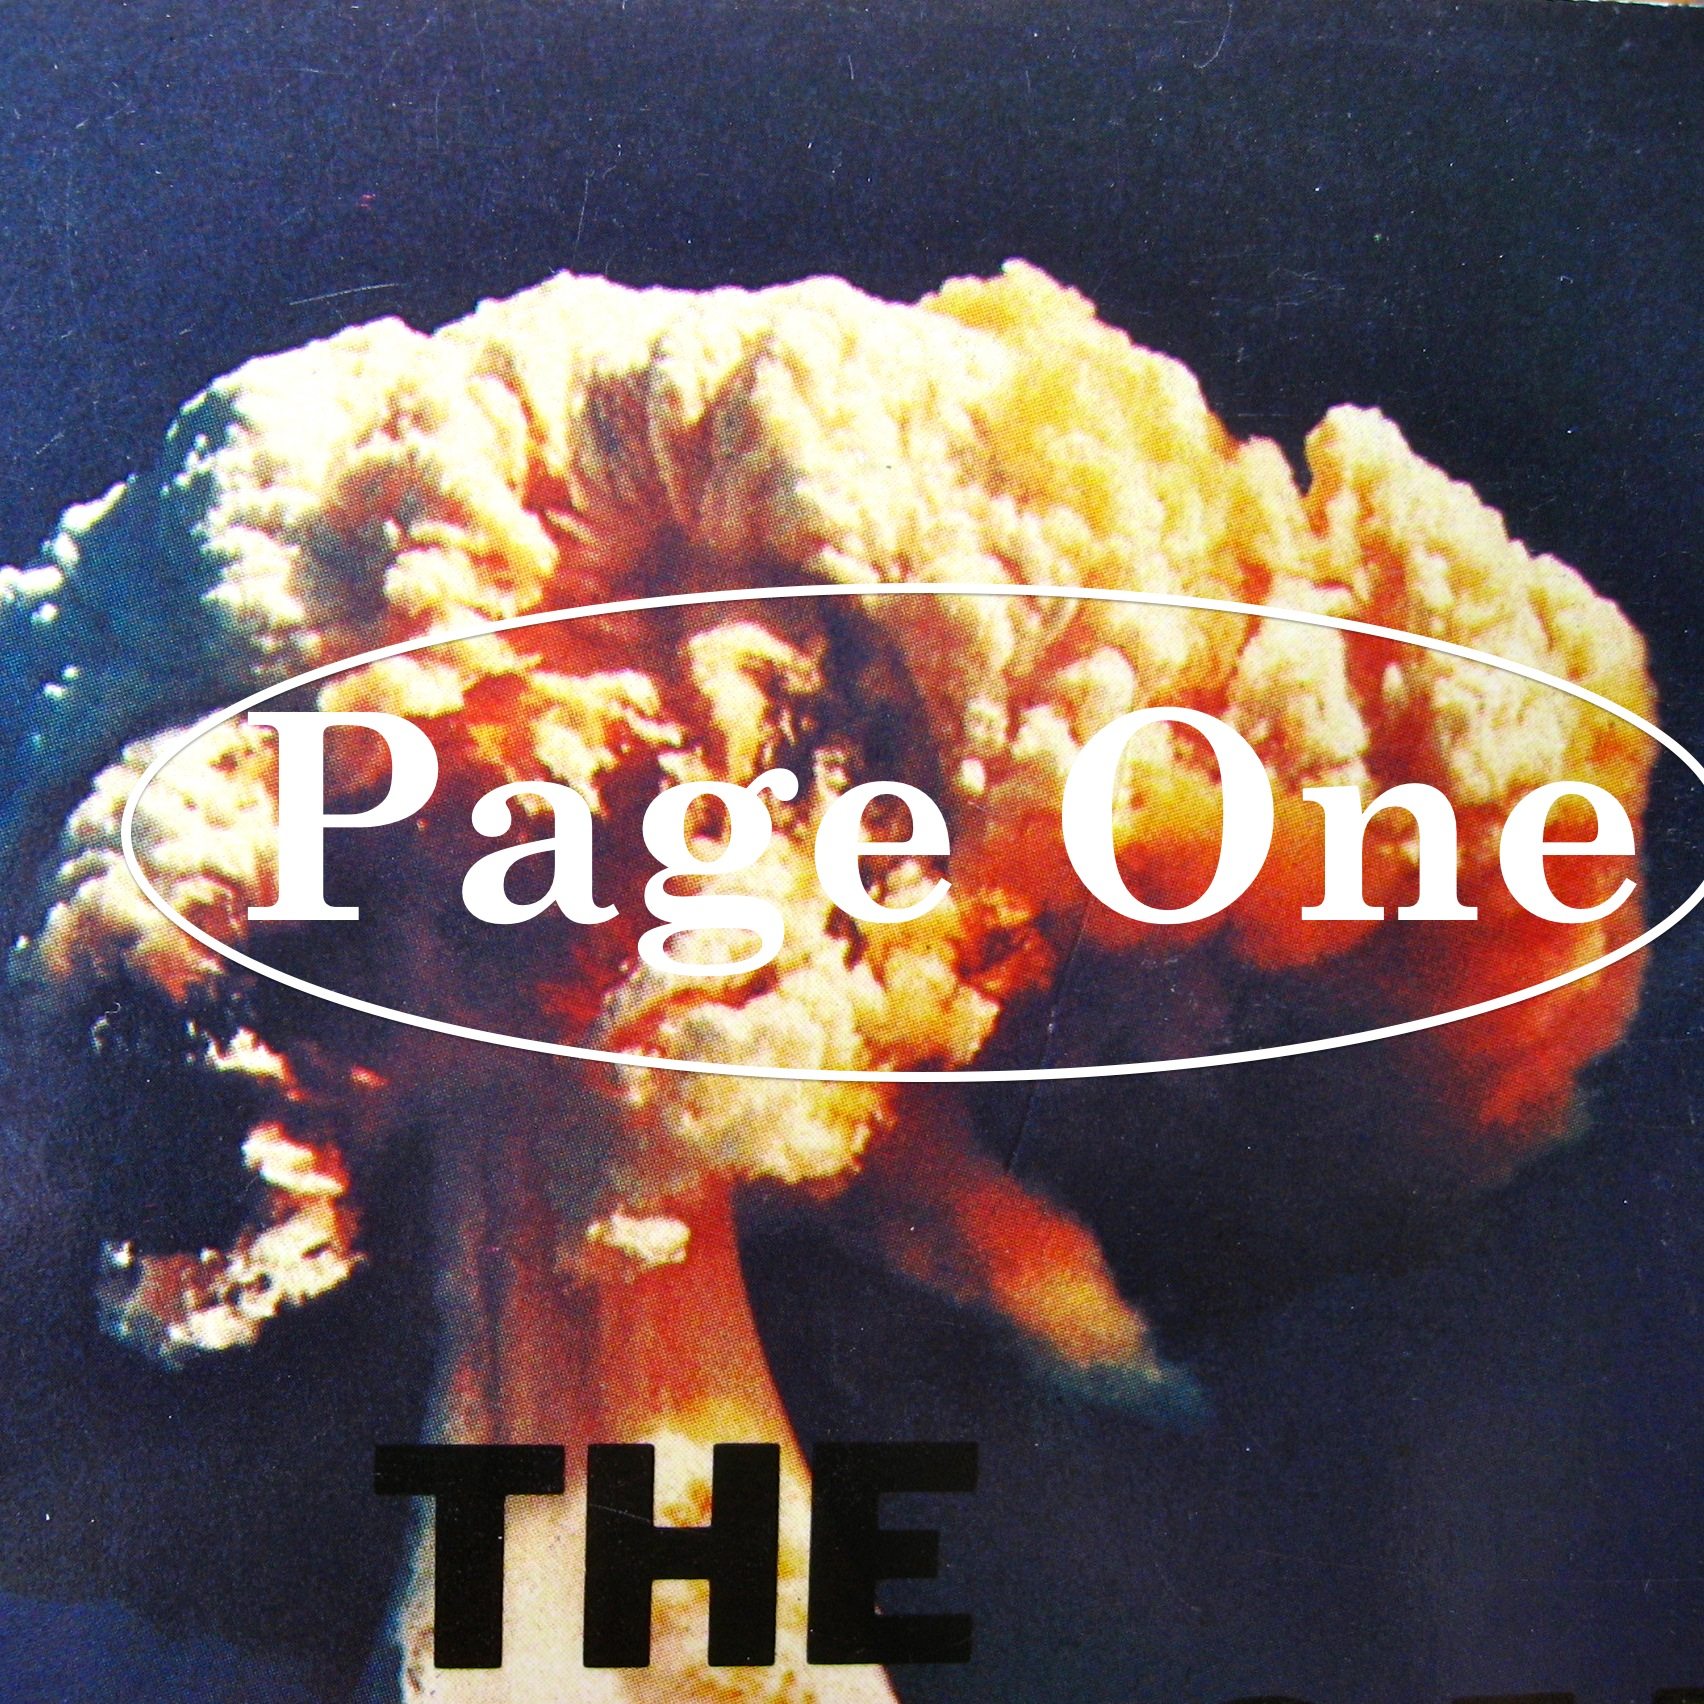 Episode image is a detail from the cover of The Church And The Bomb by anon., pubished in Hodder & Stoughton in 1982.